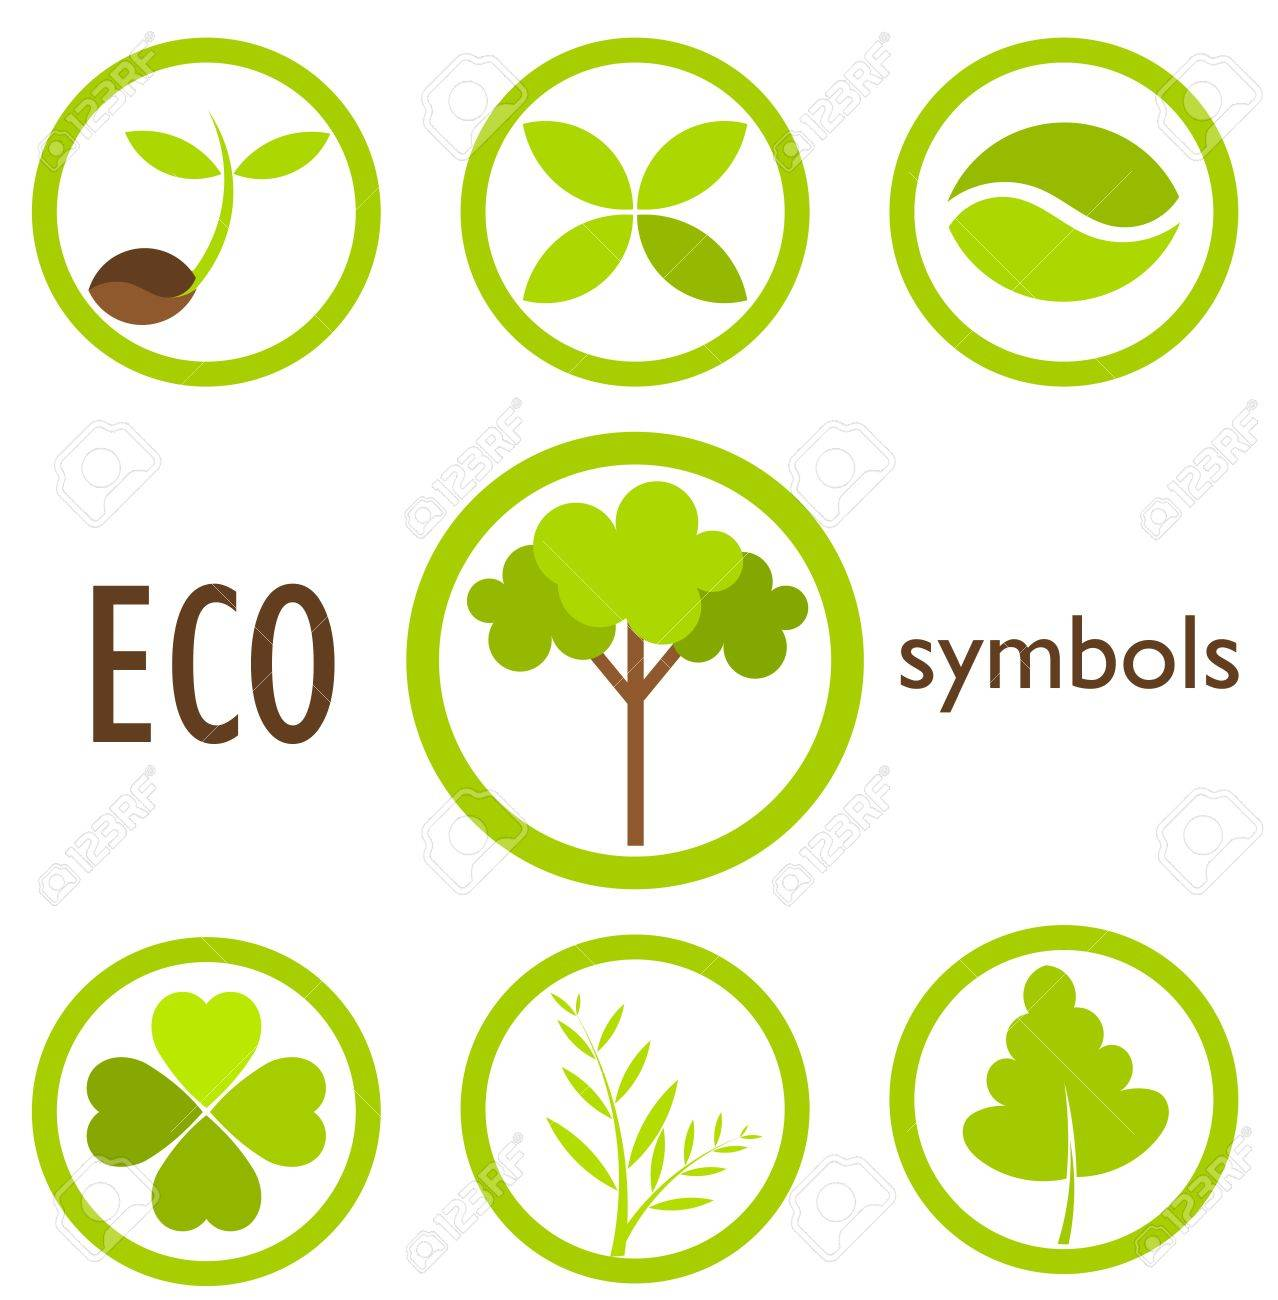 Set of eco icons and symbols in circles. Vector illustration Stock Vector - 13196557